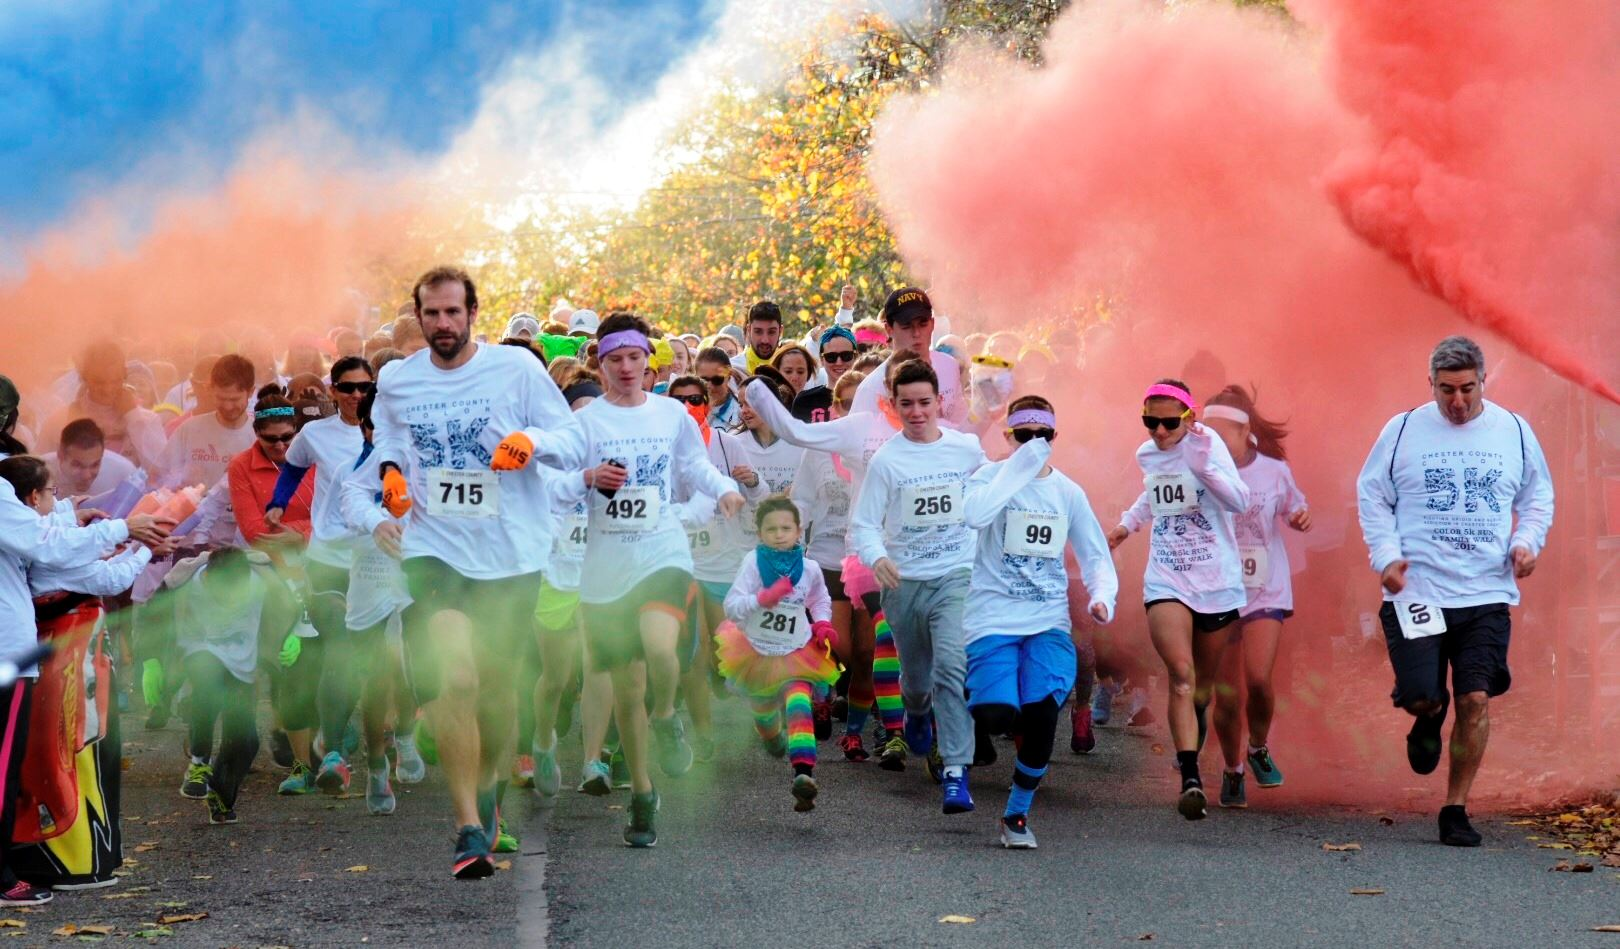 Start of the Color 5K